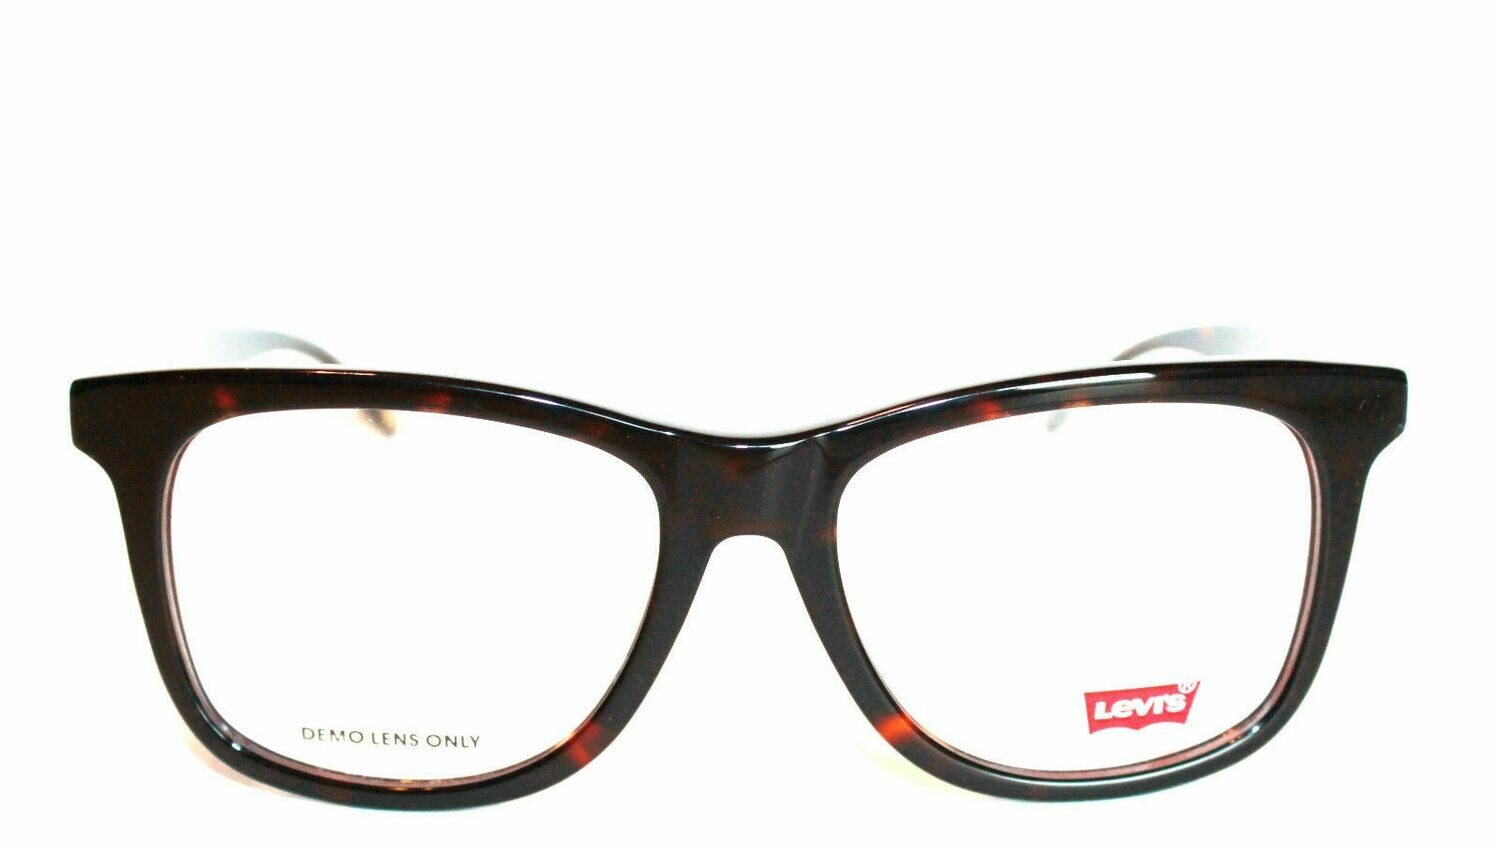 Authentic and New Levi's LS121 eyeglass frame BR Tortoise Levi's Case included